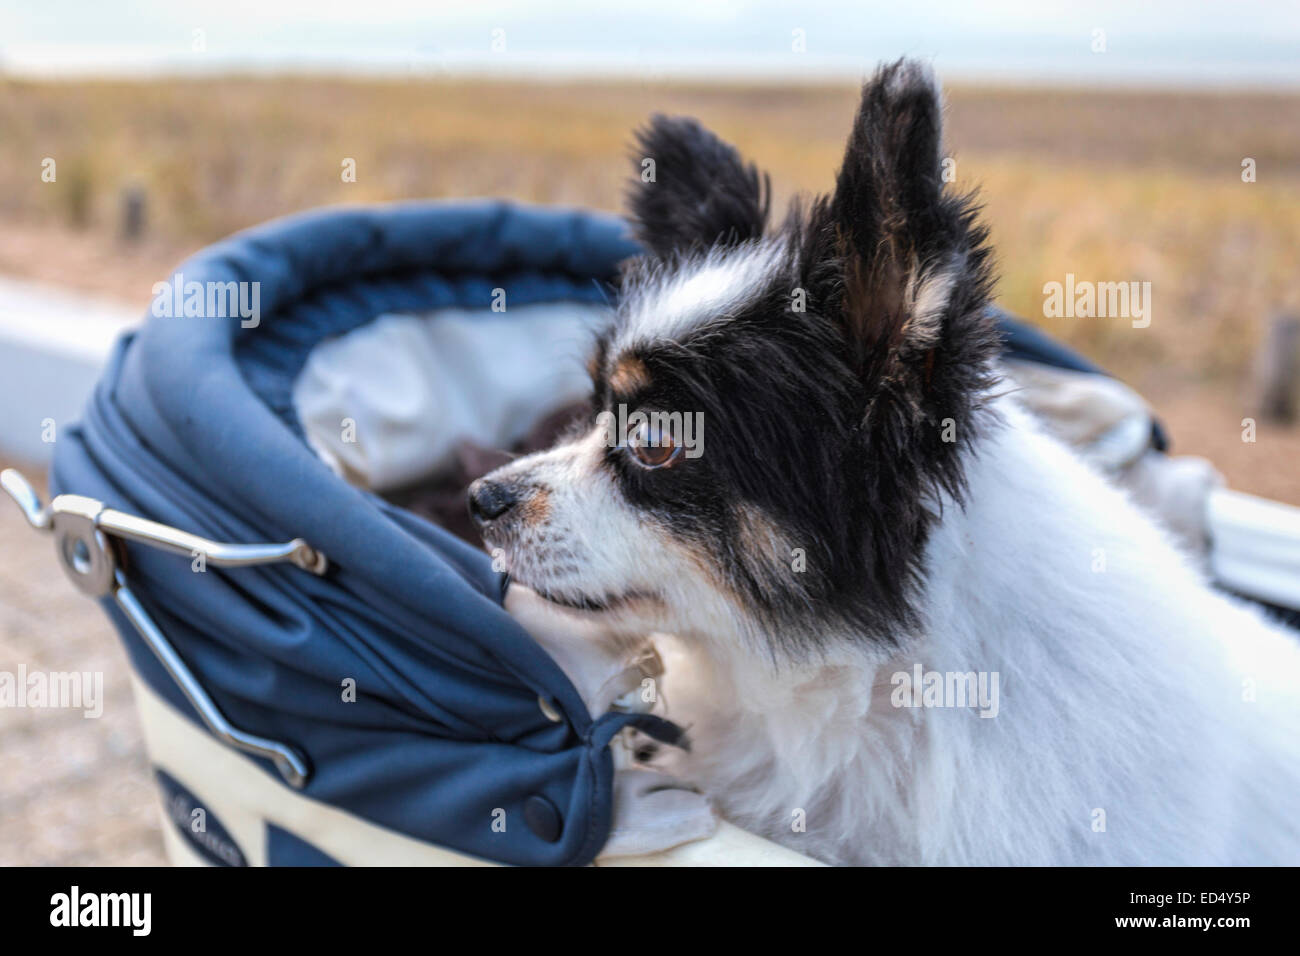 A senior dog, a Papillon, also called the Continental Toy Spaniel, seated in a vintage pram. - Stock Image